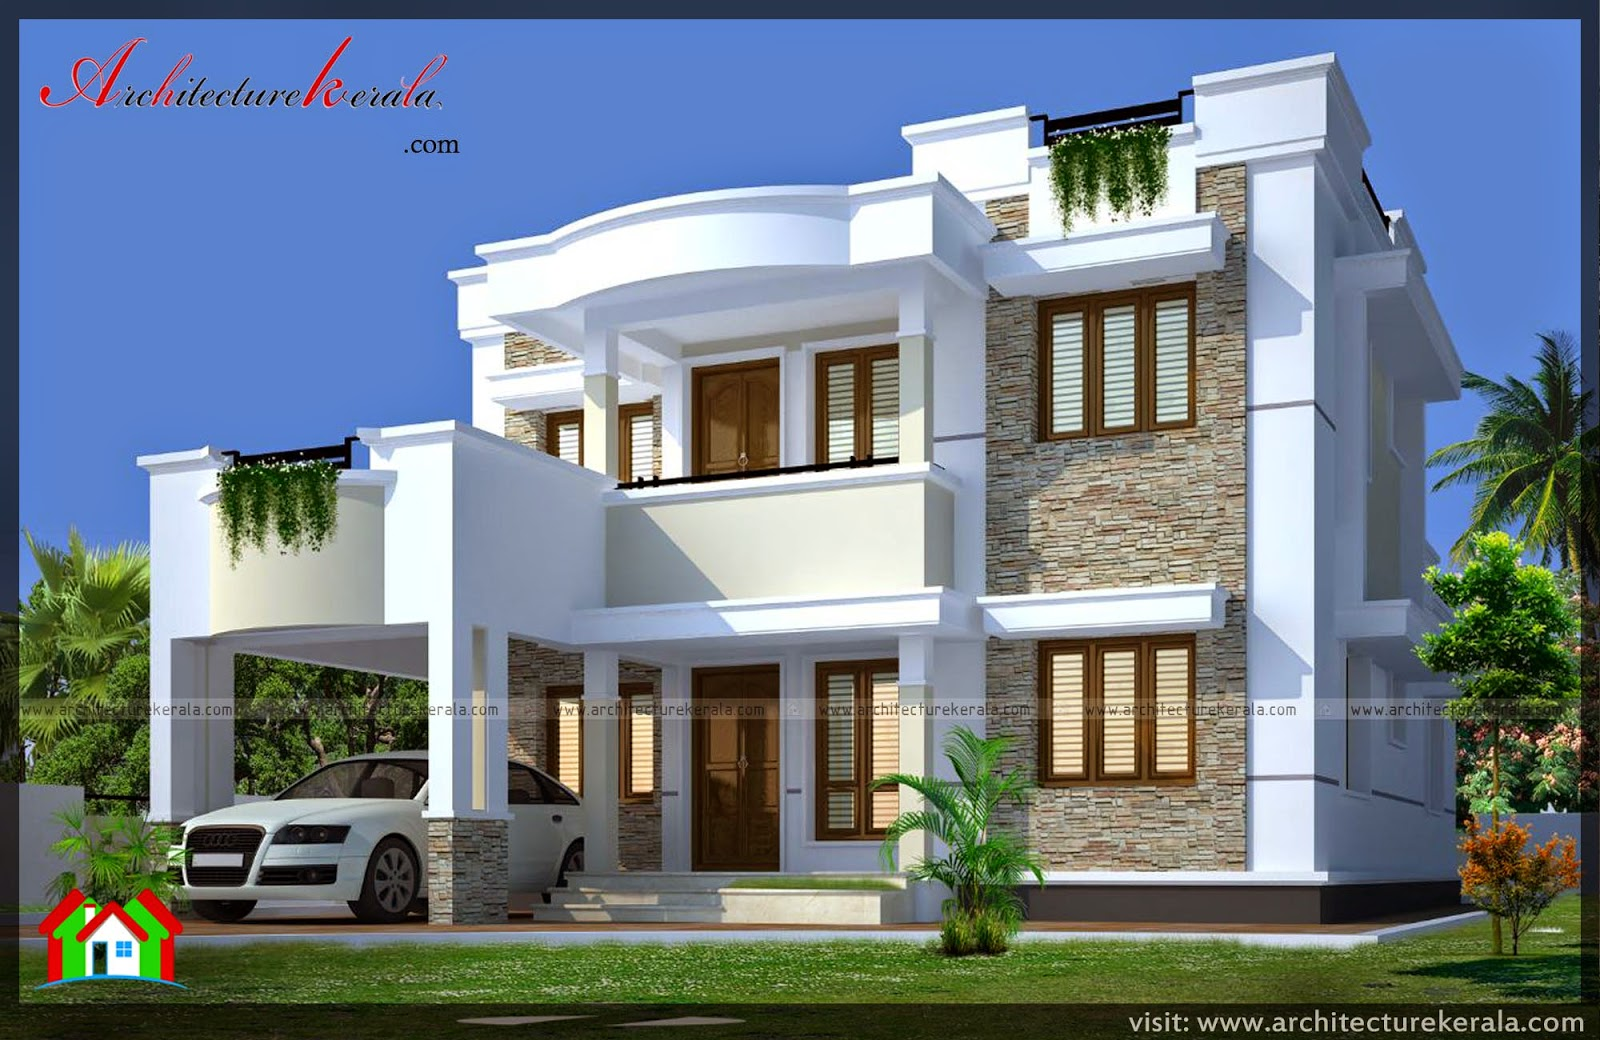 Architecture kerala 3 bhk single floor kerala house plan for Elevation of kerala homes